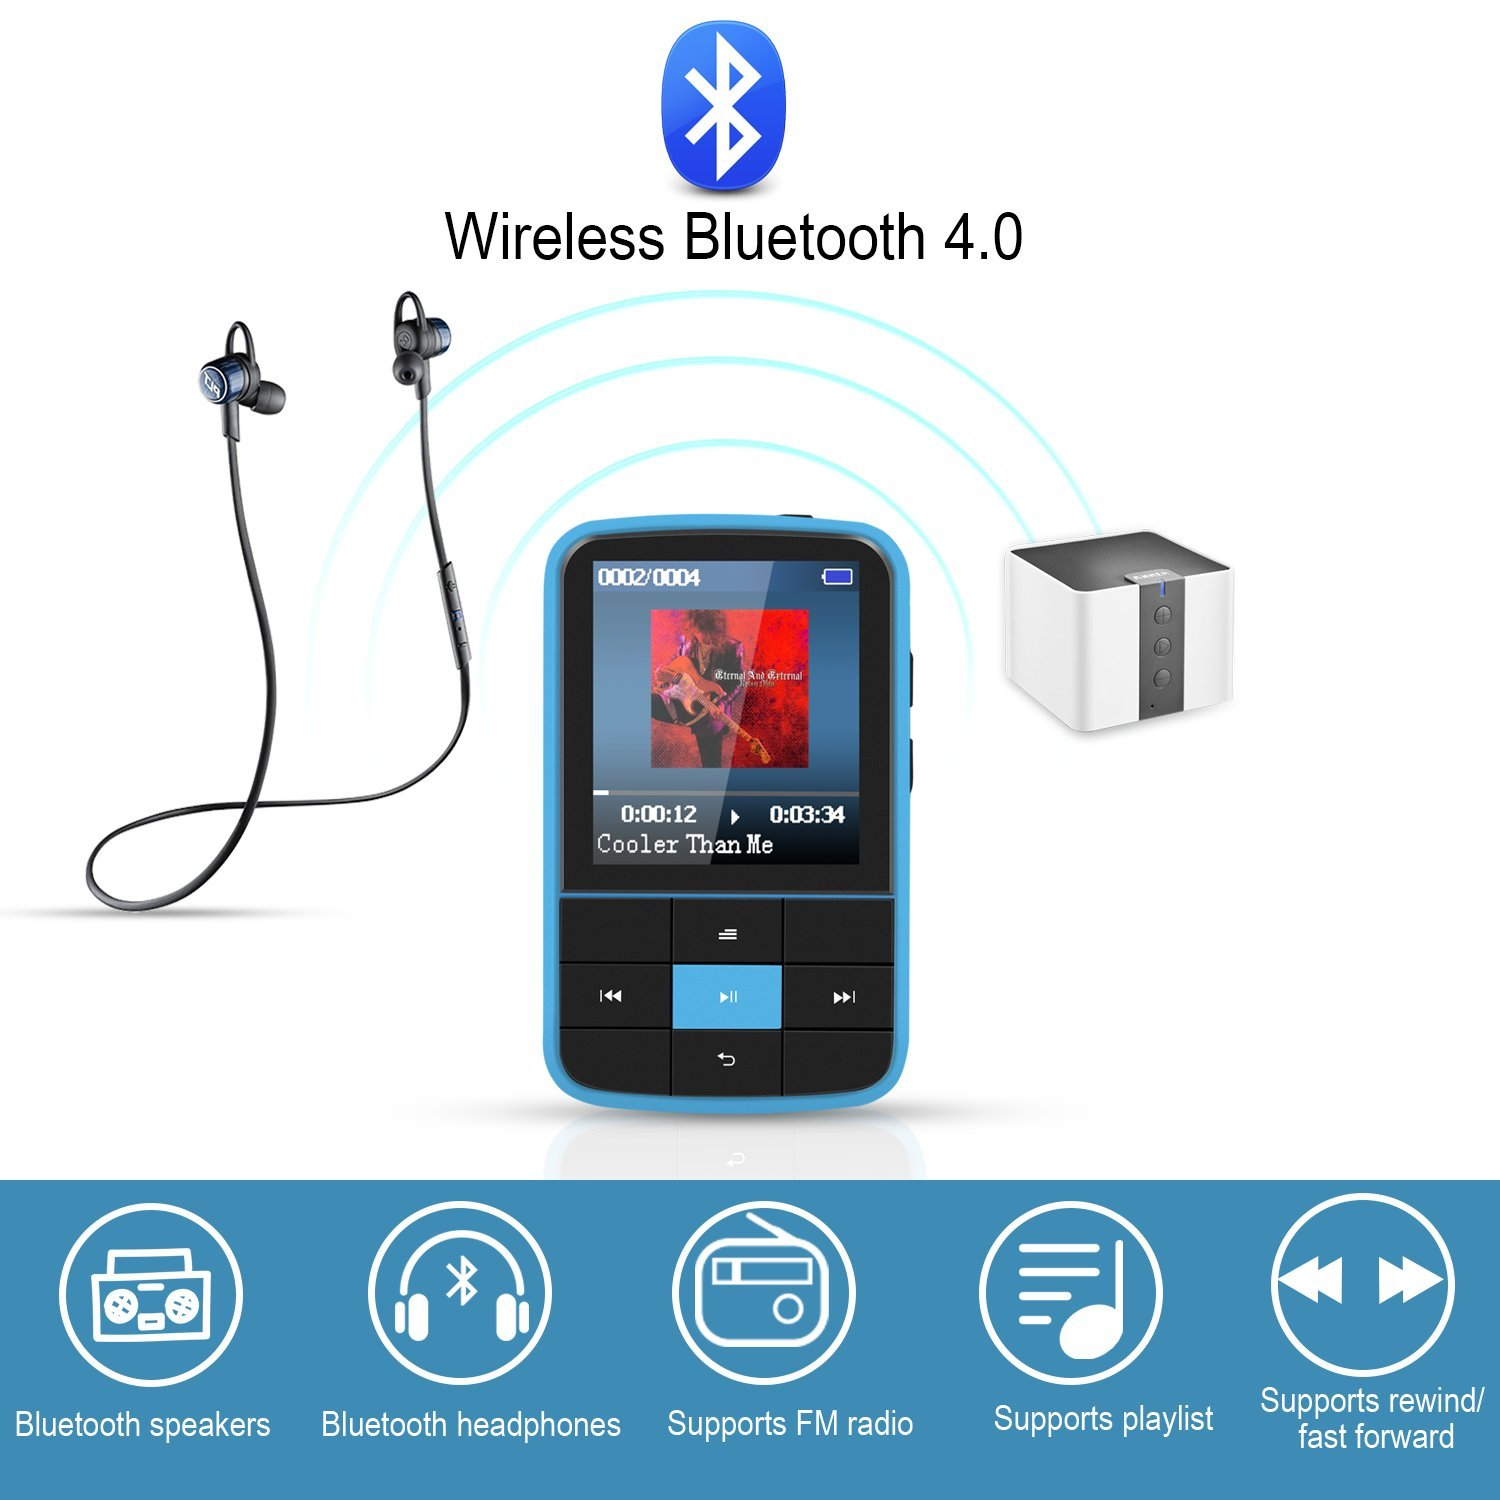 AGPTEK 16GB Clip MP3 Player with Bluetooth 4.0, Wearable Portable Music Player with Sweatproof Silicone Case and Sport Armband Expandable Up to 128GB, Blue(G15) by AGPTEK (Image #3)